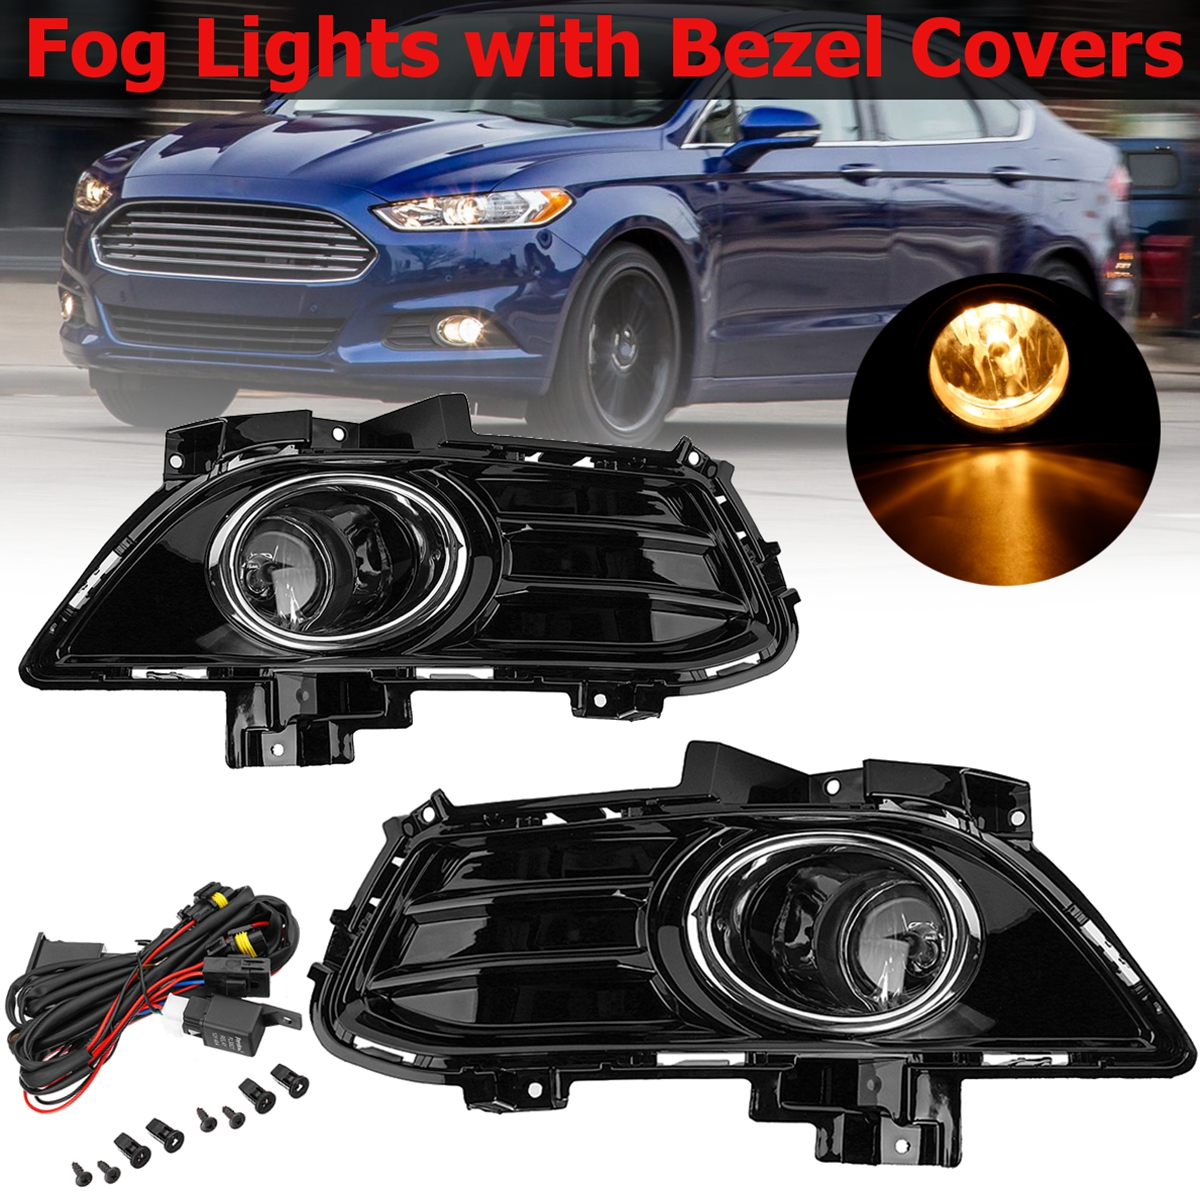 Complete Set Front Fog Lights Fog lamp Kit with Bezel Covers and Wiring For Ford for Fusion for Mondeo 2013 2014 2015 2016Complete Set Front Fog Lights Fog lamp Kit with Bezel Covers and Wiring For Ford for Fusion for Mondeo 2013 2014 2015 2016